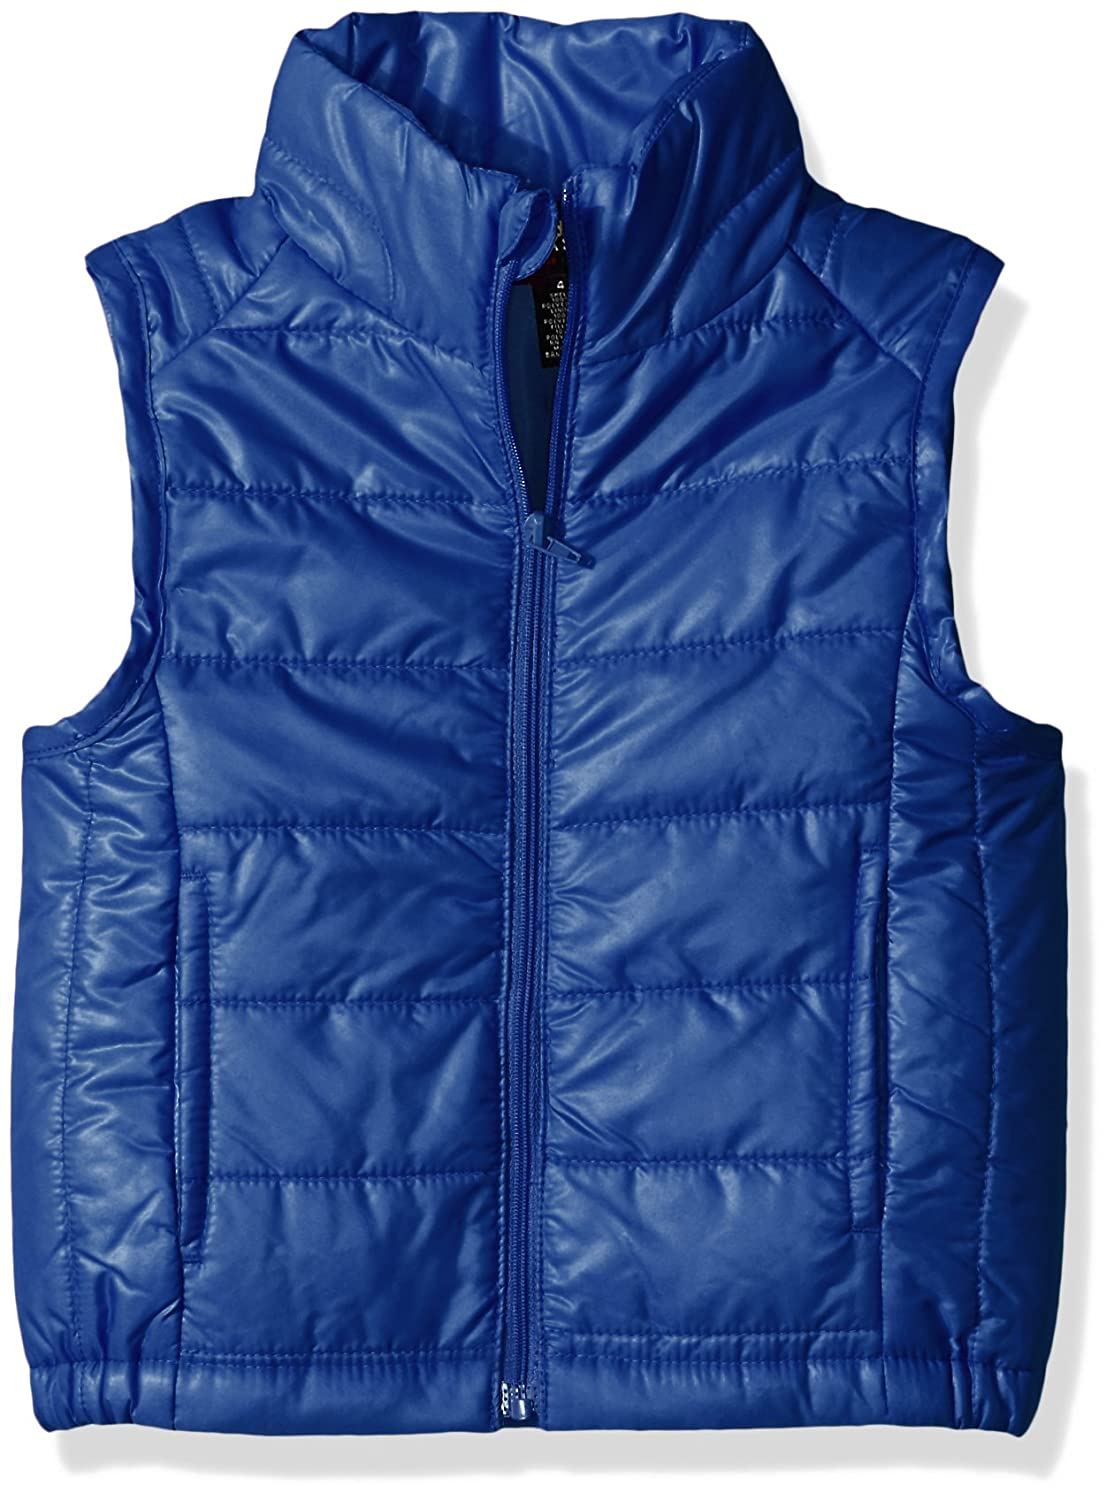 French Toast Girls' Puffer Vest LR9046